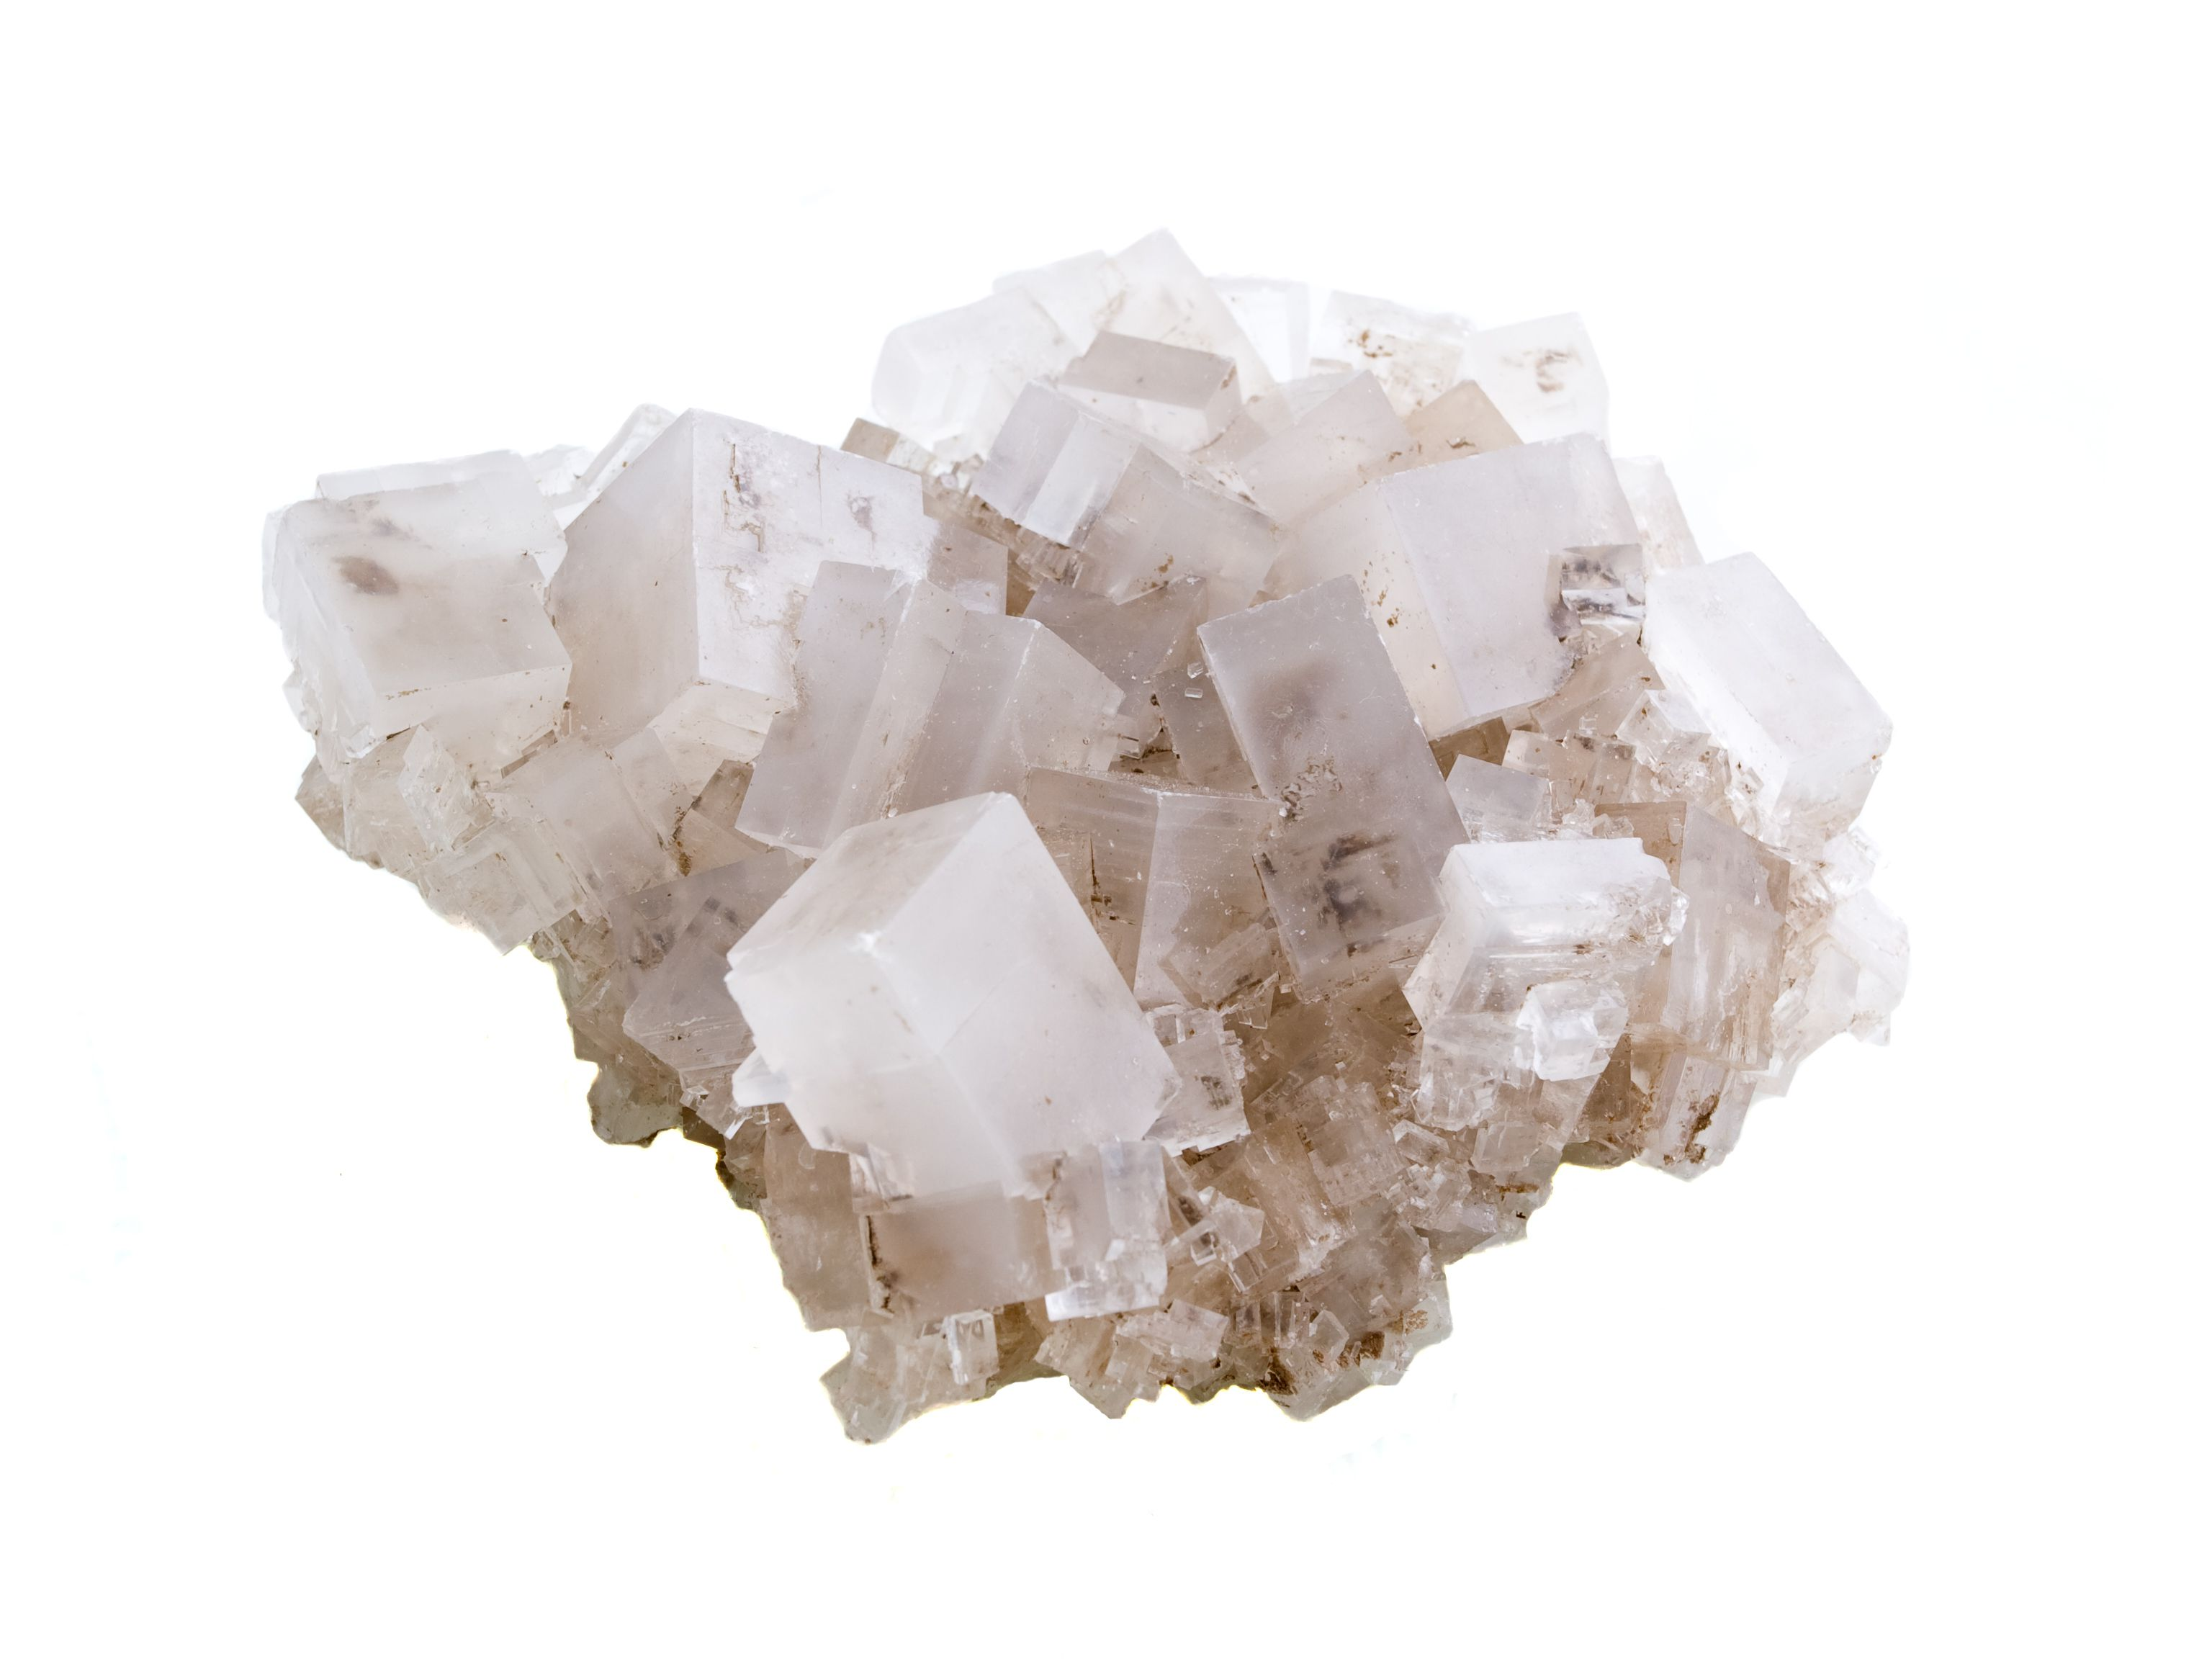 How to Grow Table Salt or Sodium Chloride Crystals